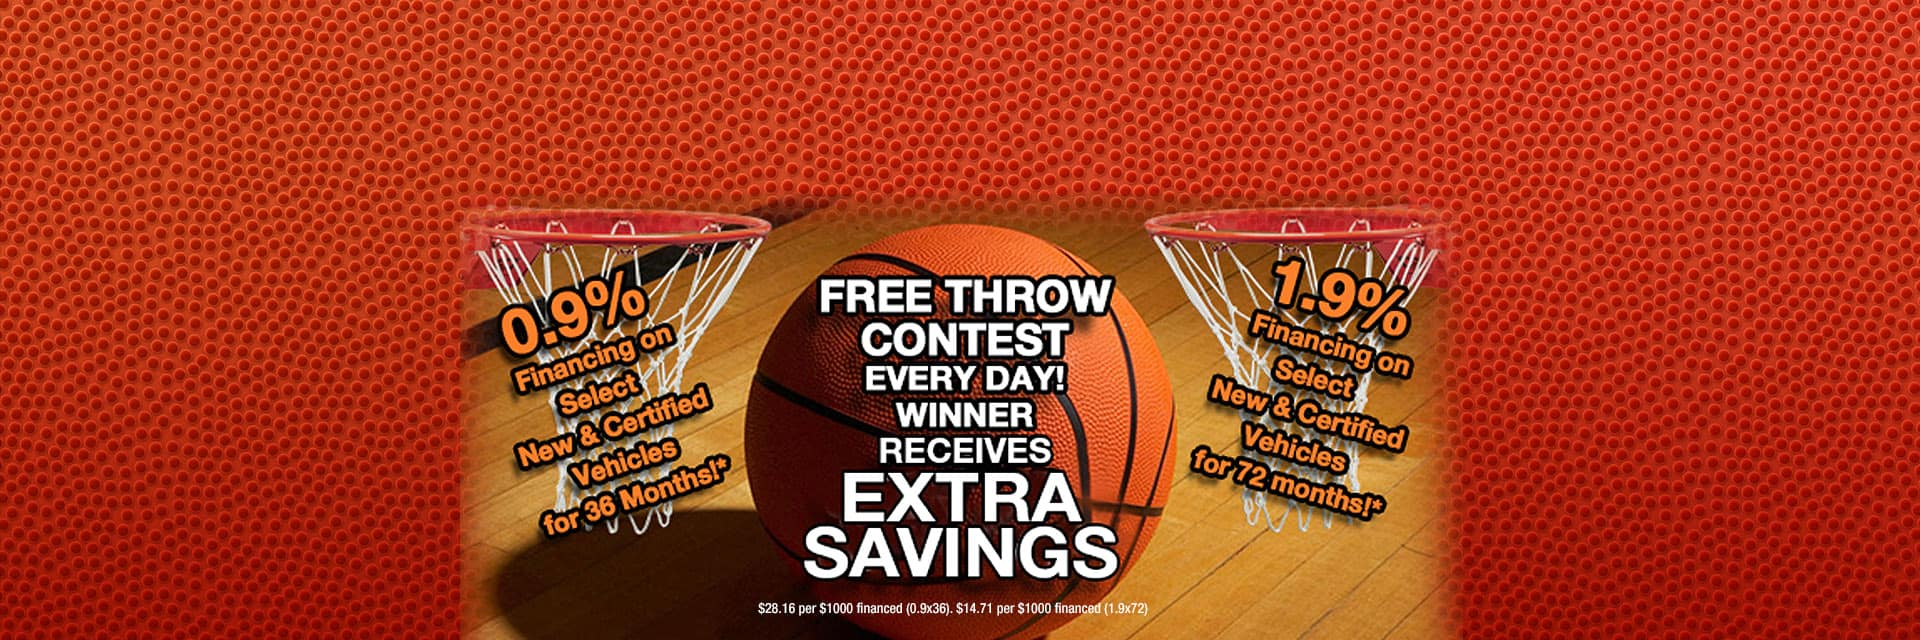 McGrath Acura Free Throw Contest